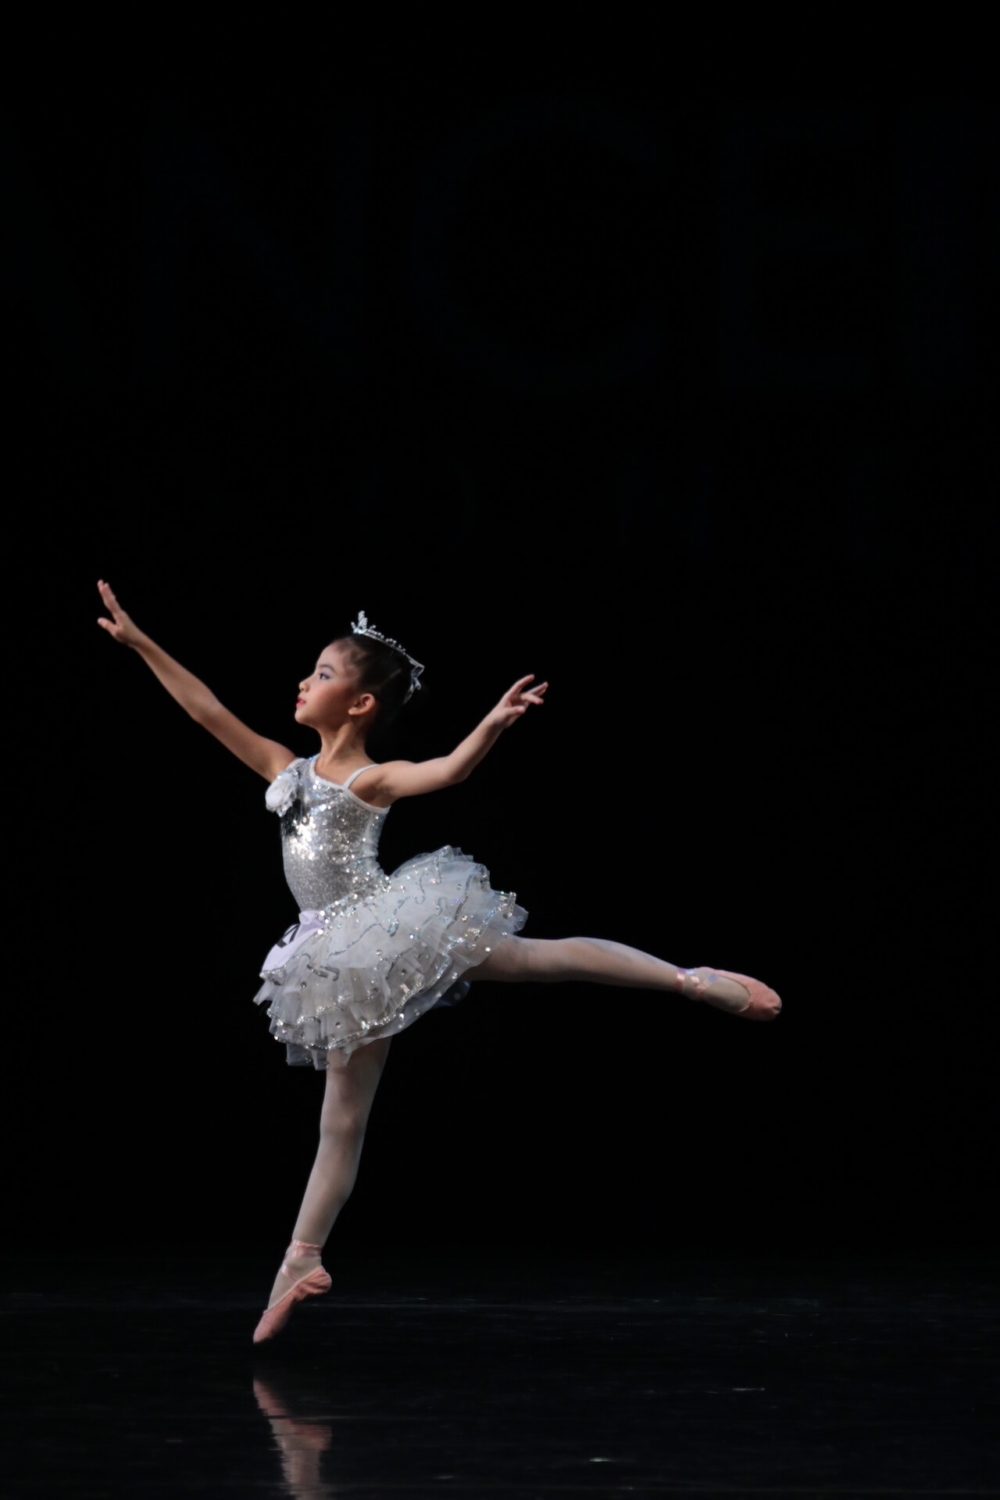 Dance Prix Indonesia 2019 – Ballet Junior A Finalist, Katelyn Wynette-Rose Kamadjaja